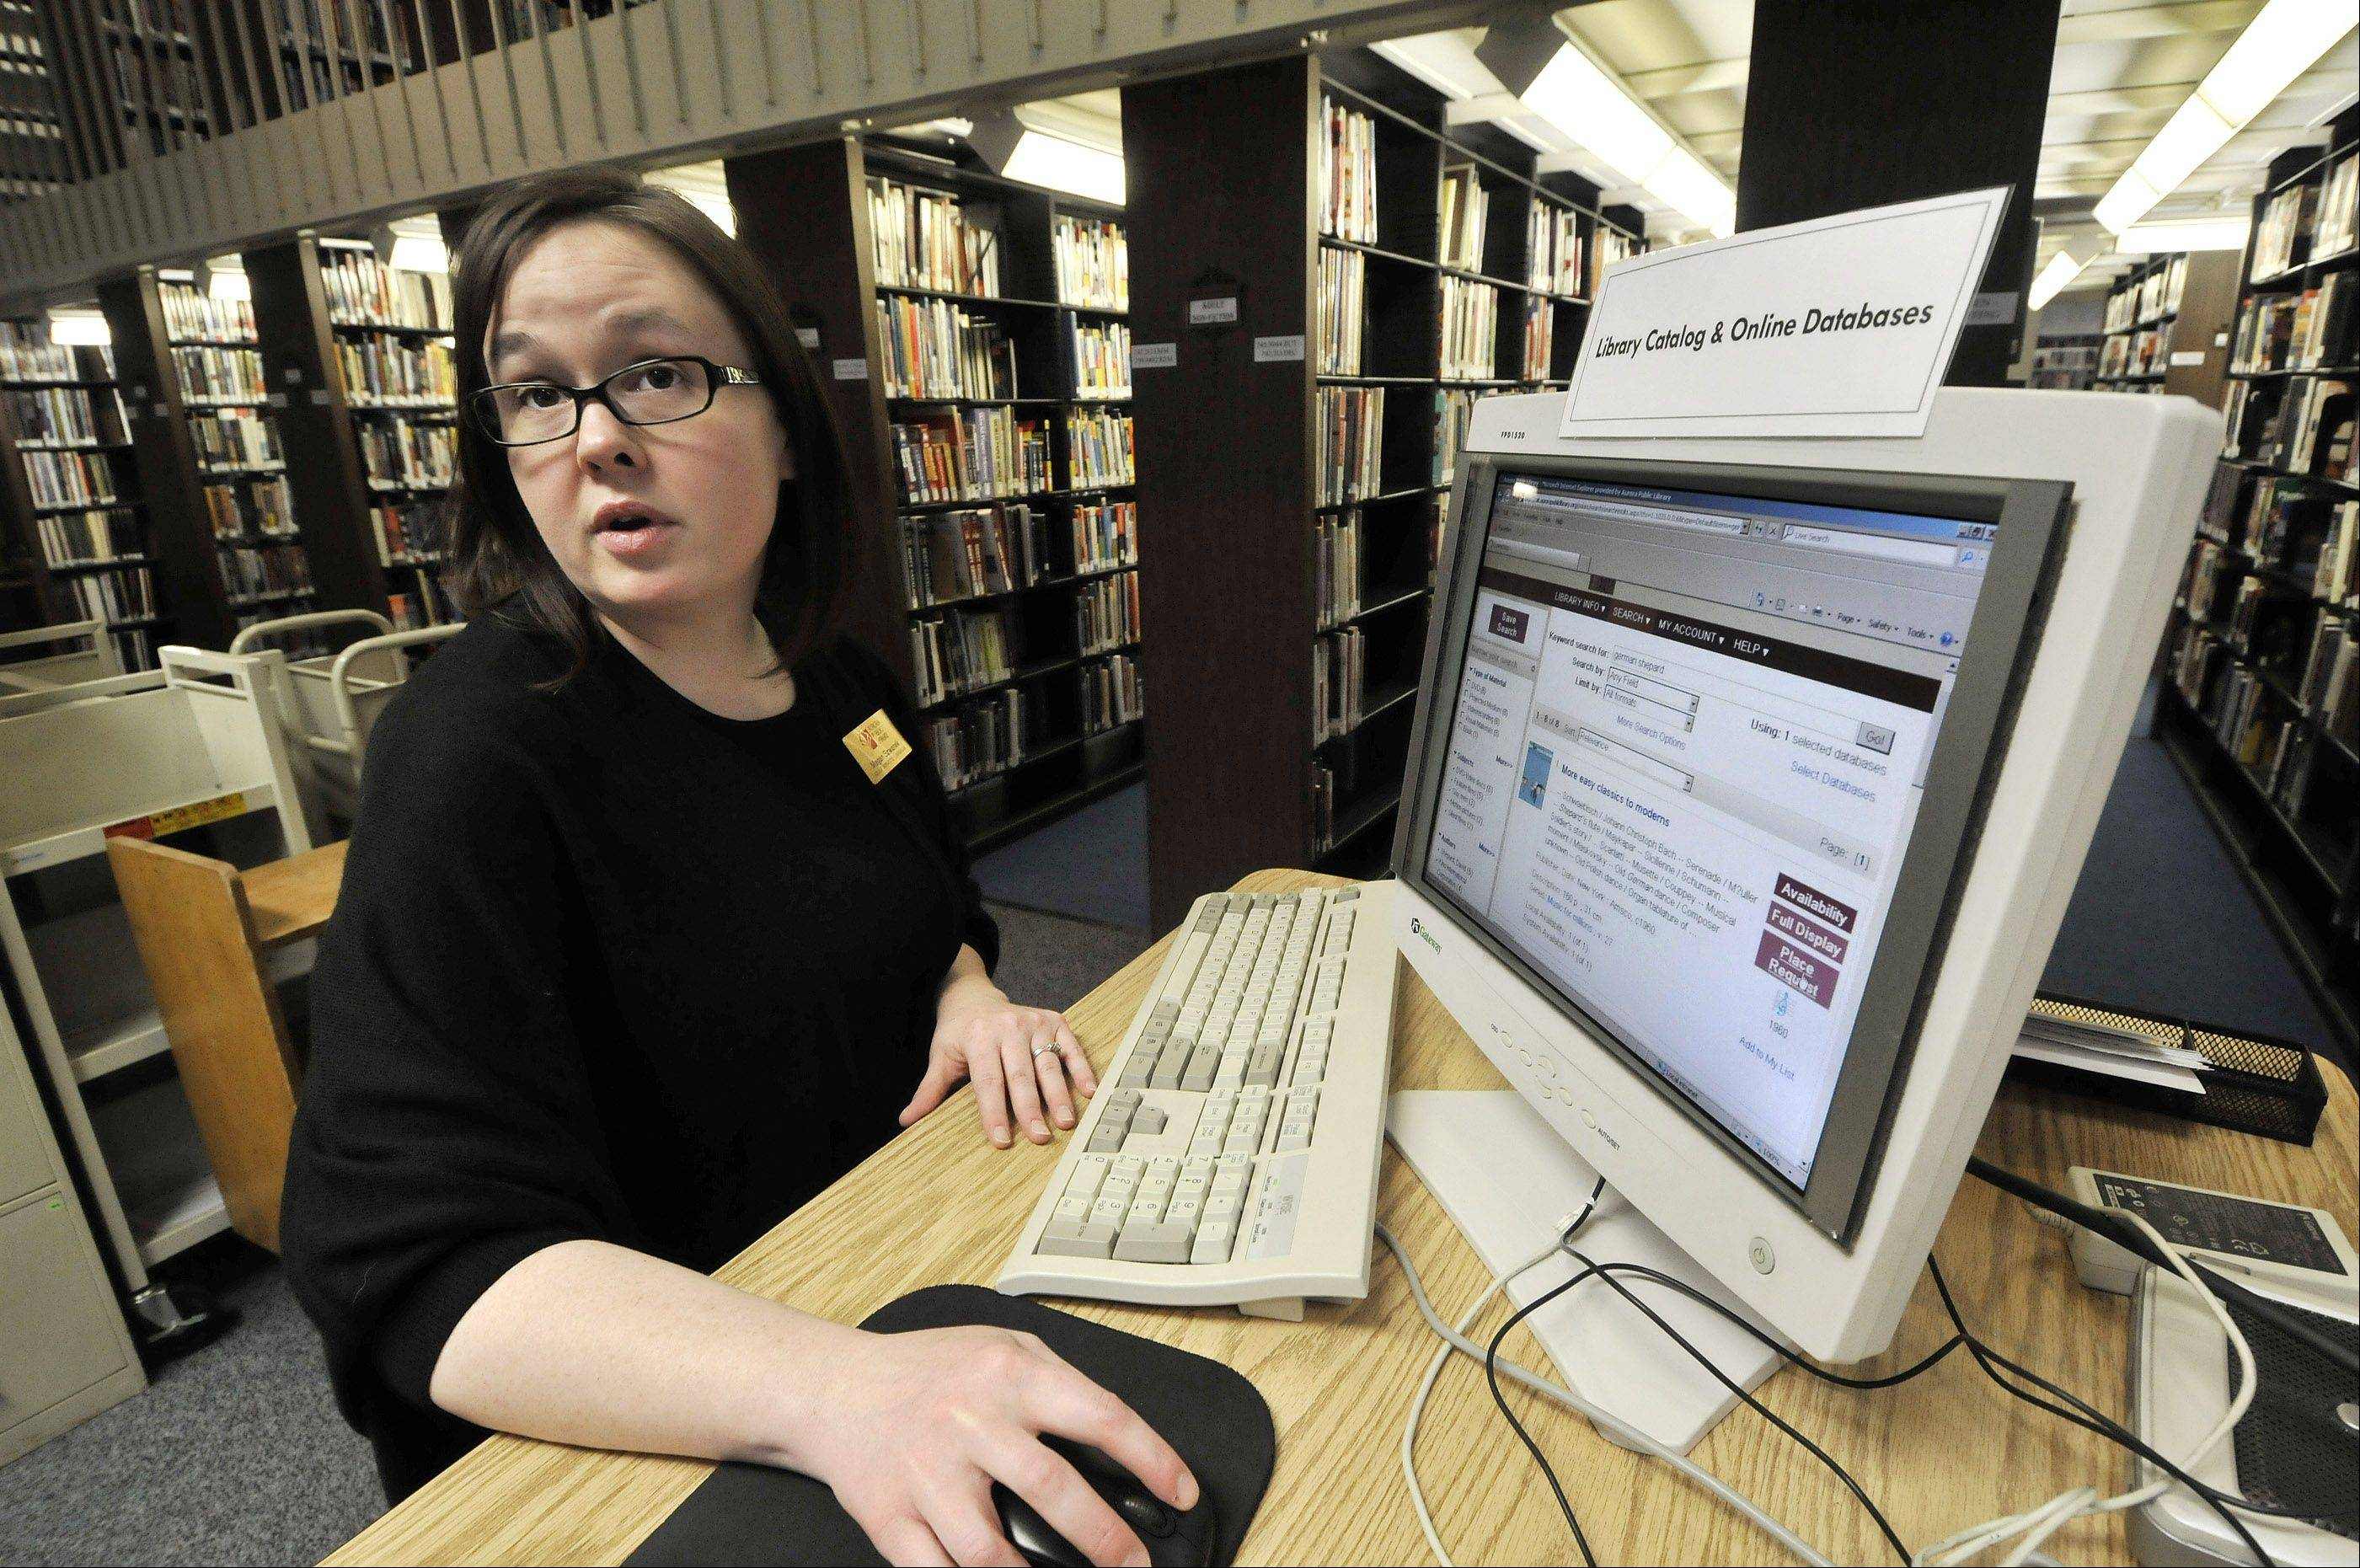 Librarian Magan Szwarek explains the Aurora Public Library�s new online catalog, which began operation Thursday. Among other things, patrons can reserve books and audio books online and keep track of items they�ve read.